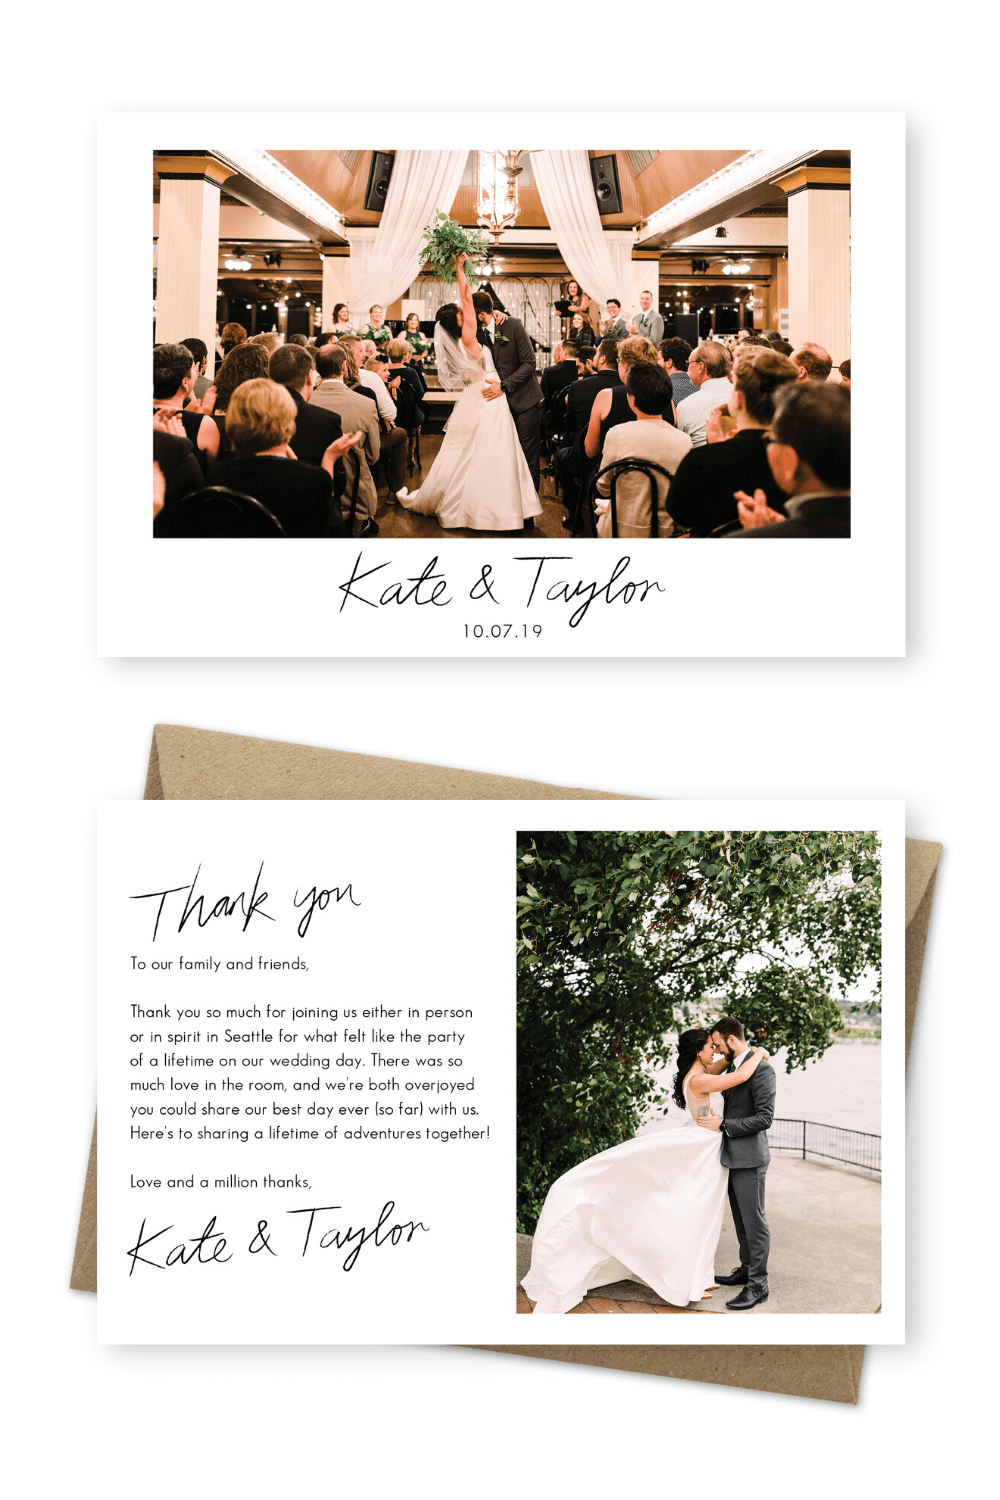 How To Write A Wedding Thank You Card That Your Guests Will Love In 2020 Wedding Thank You Messages Wedding Messages Thank You Card Wording